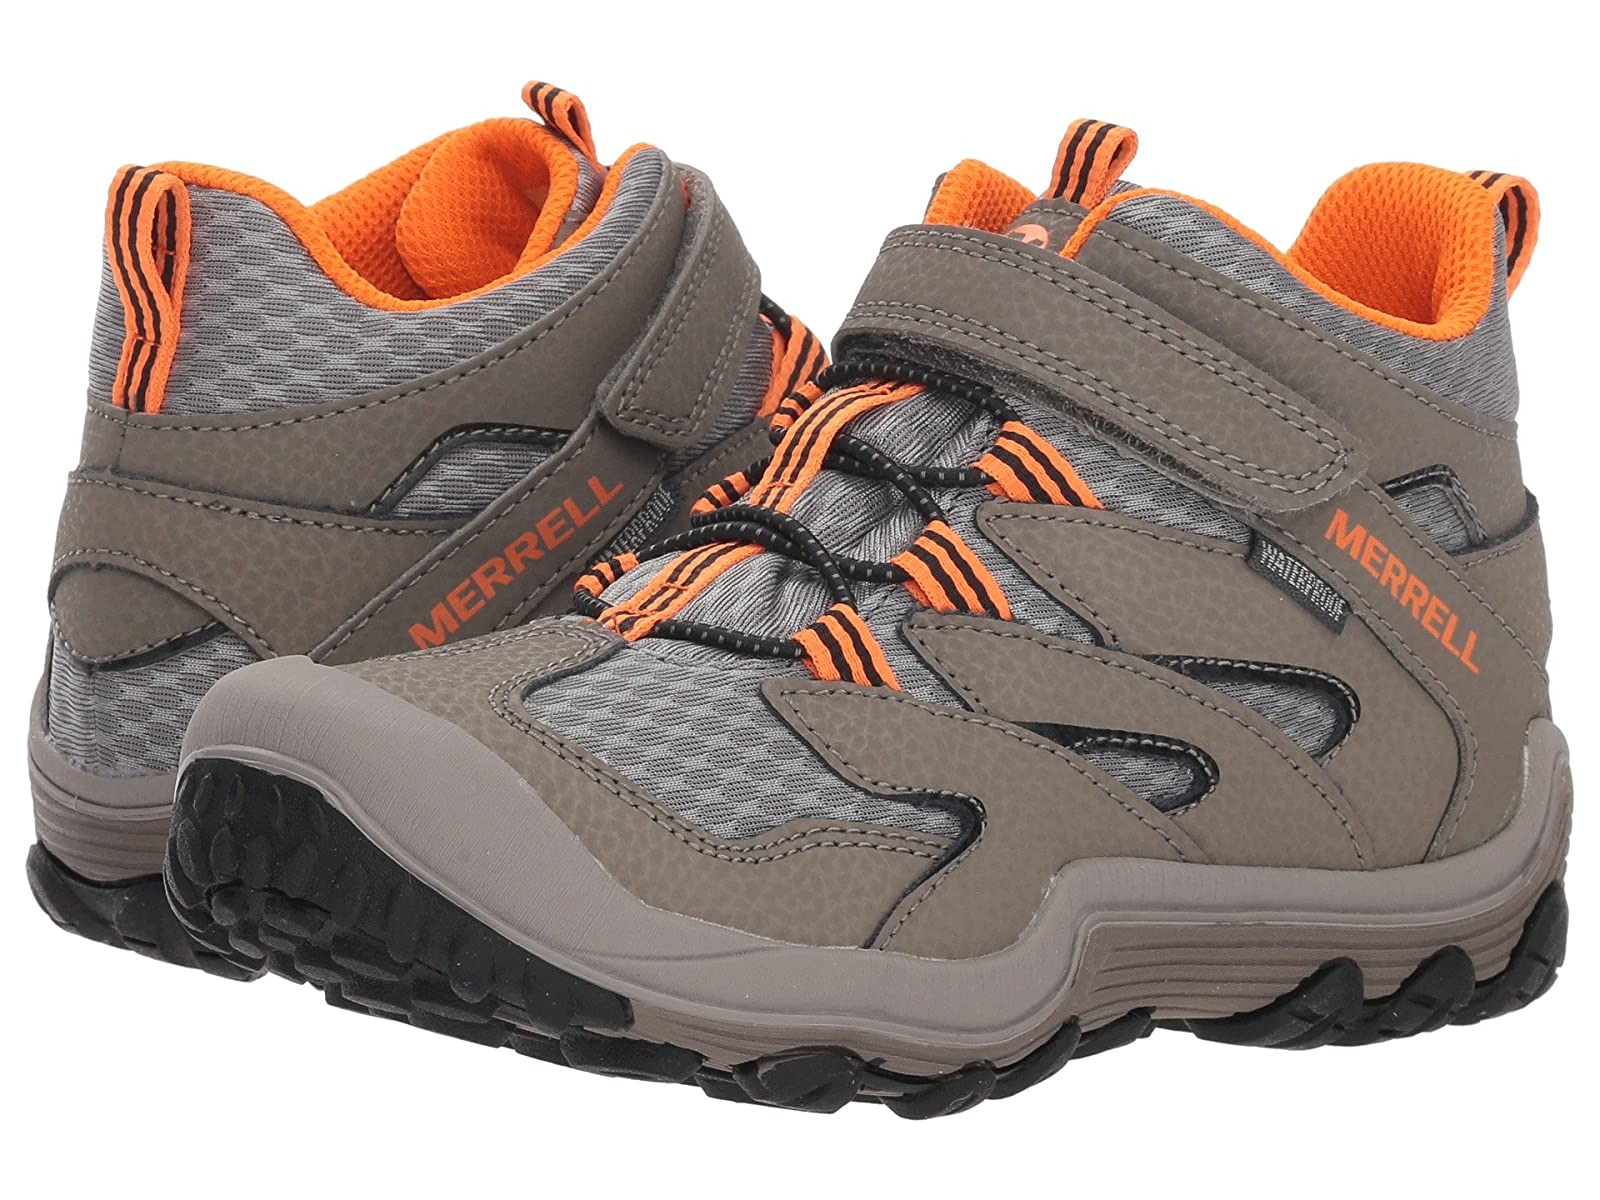 Merrell Kids Chameleon 7 Access Mid A/C Waterproof (Little Kid)Atmospheric grades have affordable shoes